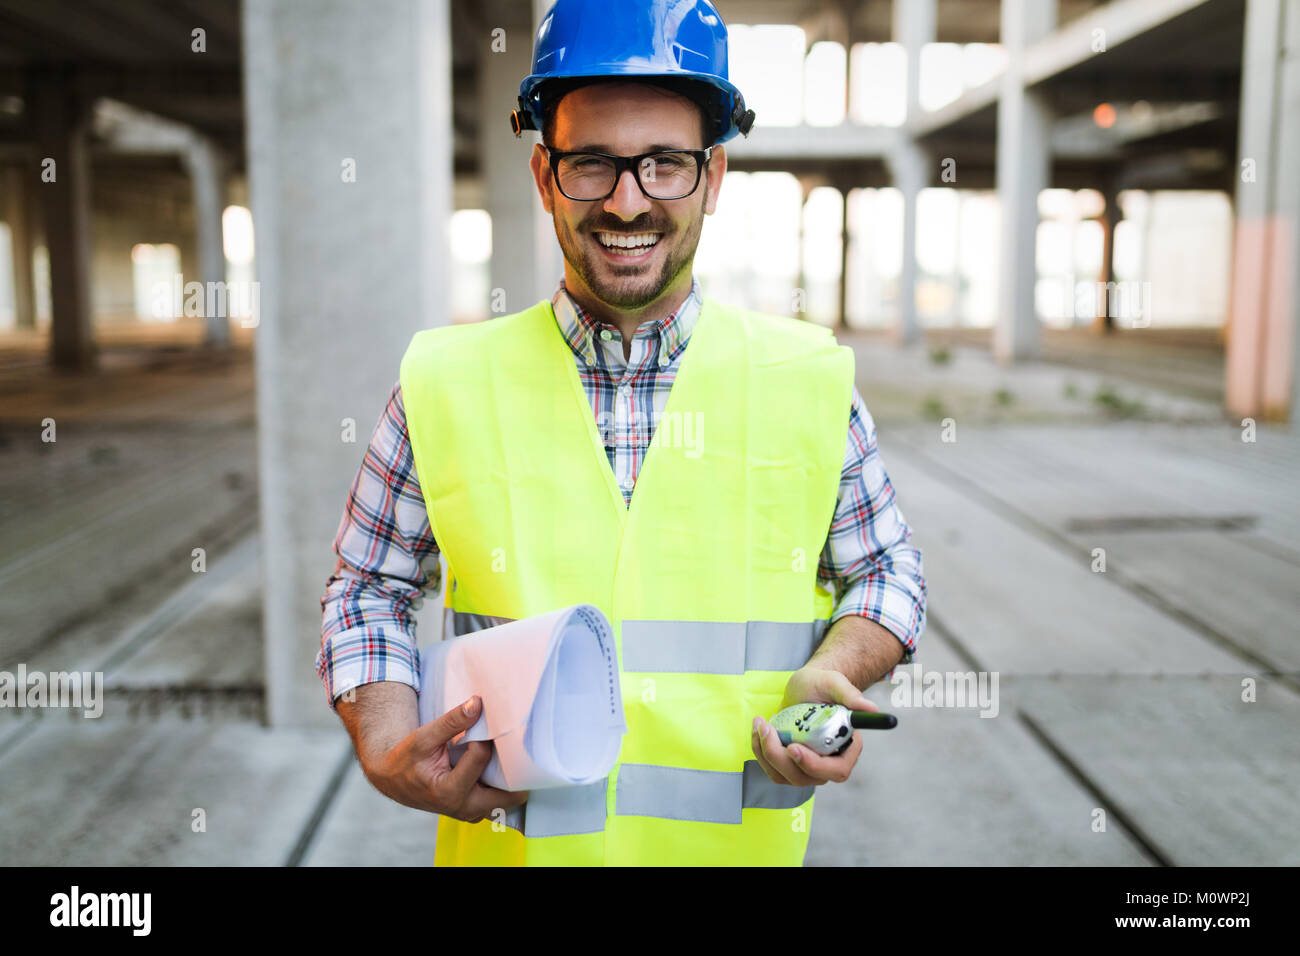 Male architect with blueprints using walkie-talkie Stock Photo